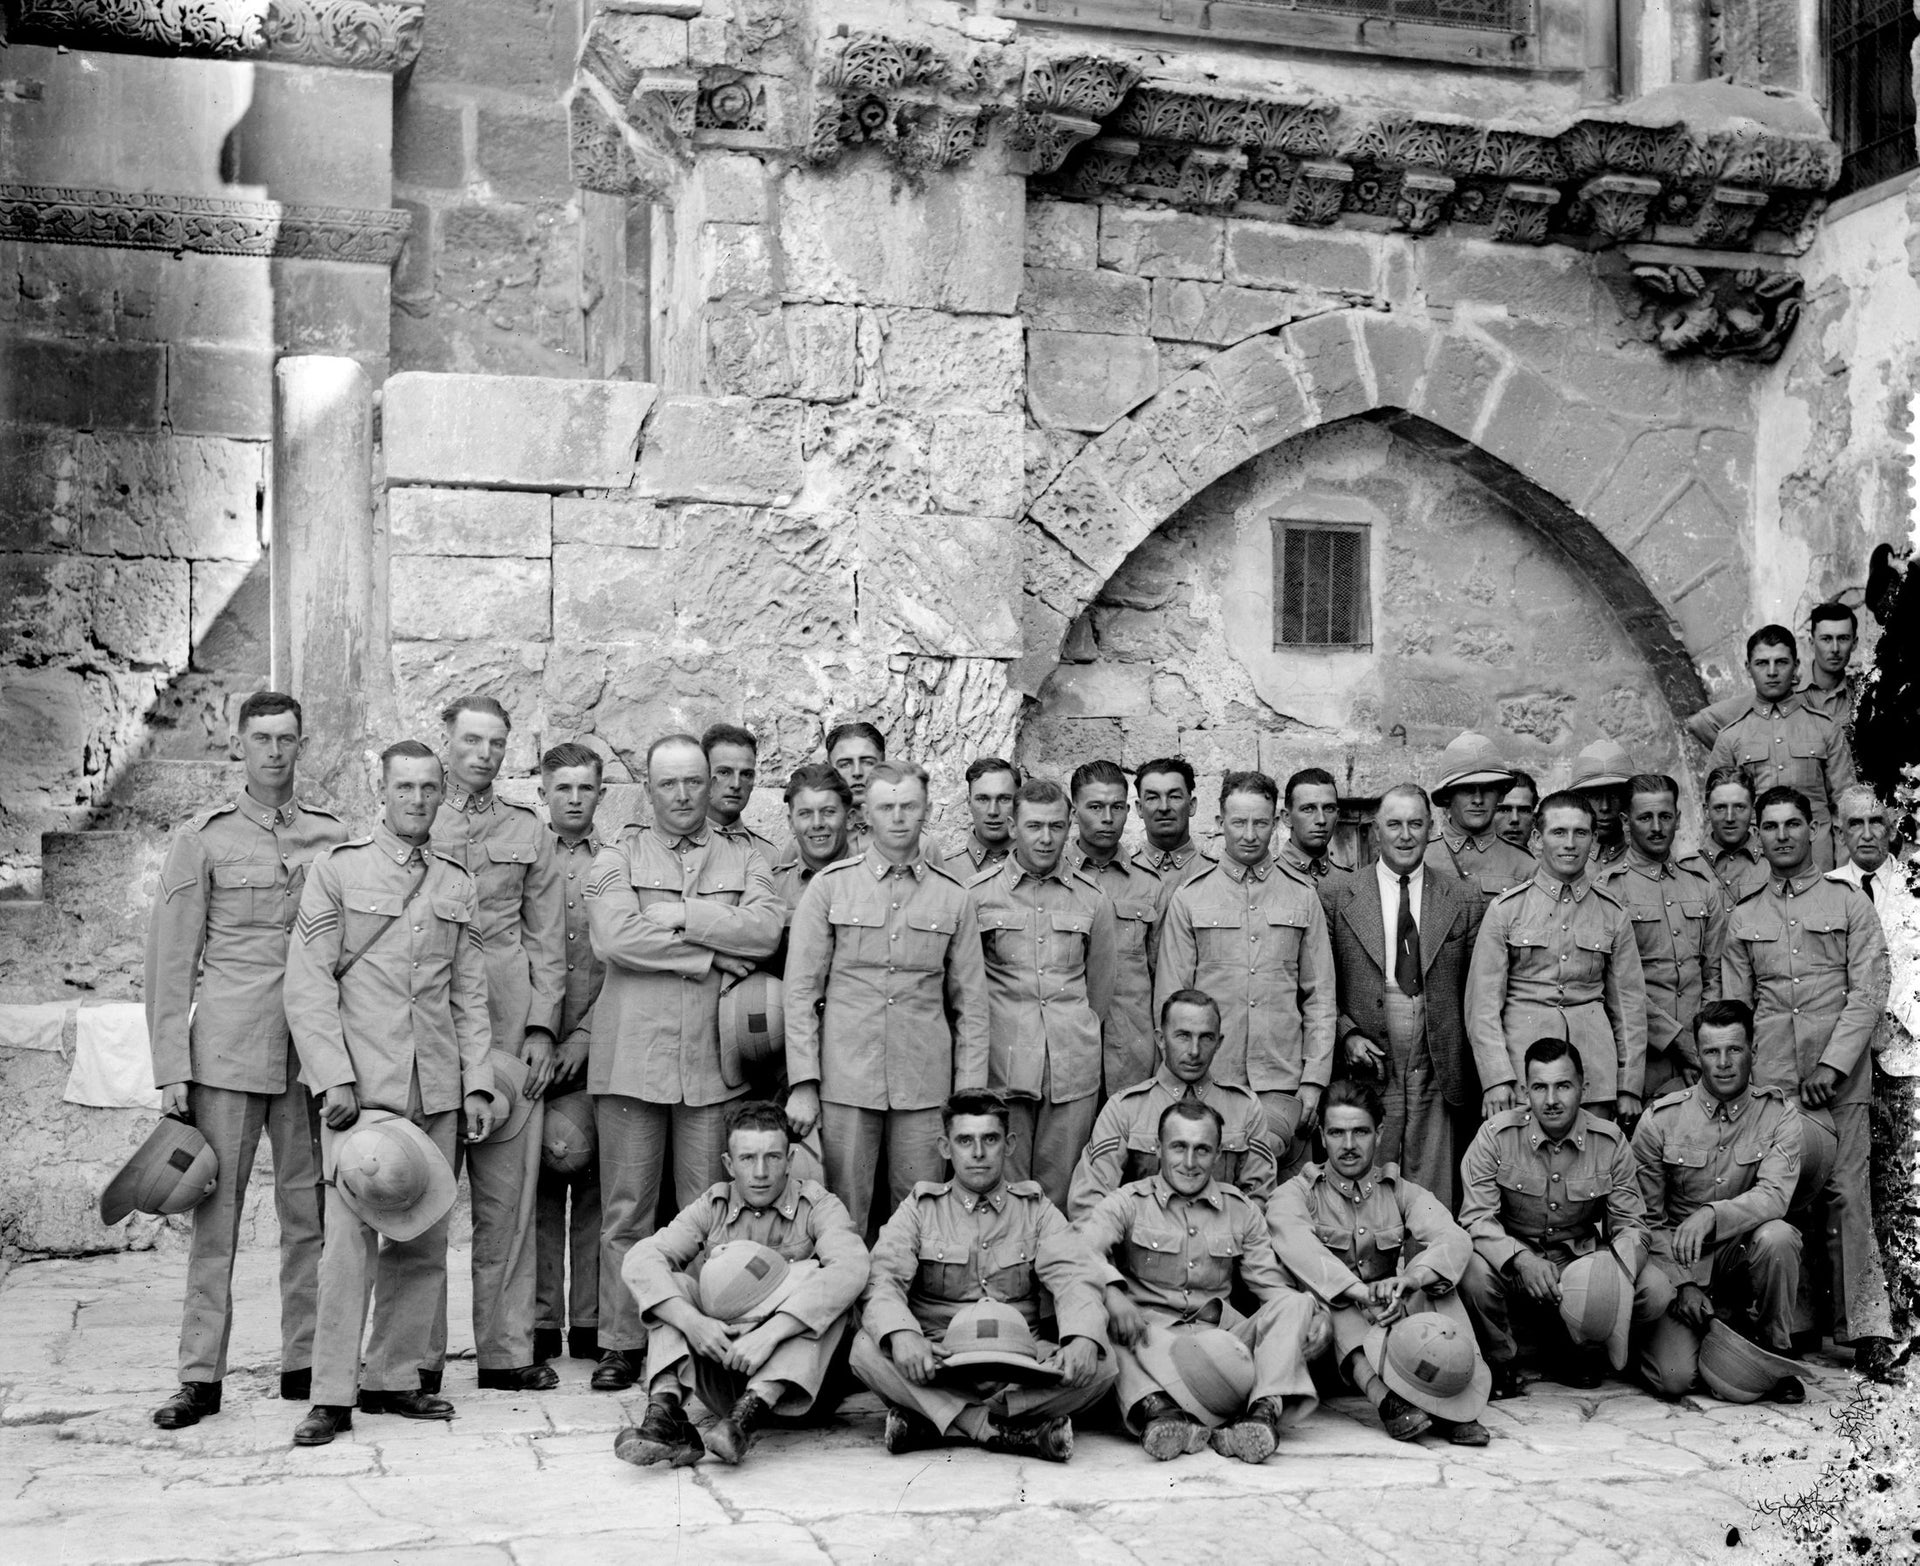 A British military group in the courtyard of the Holy Sepulchre Church in Jerusalem, Mandatory Palestine, 1920.